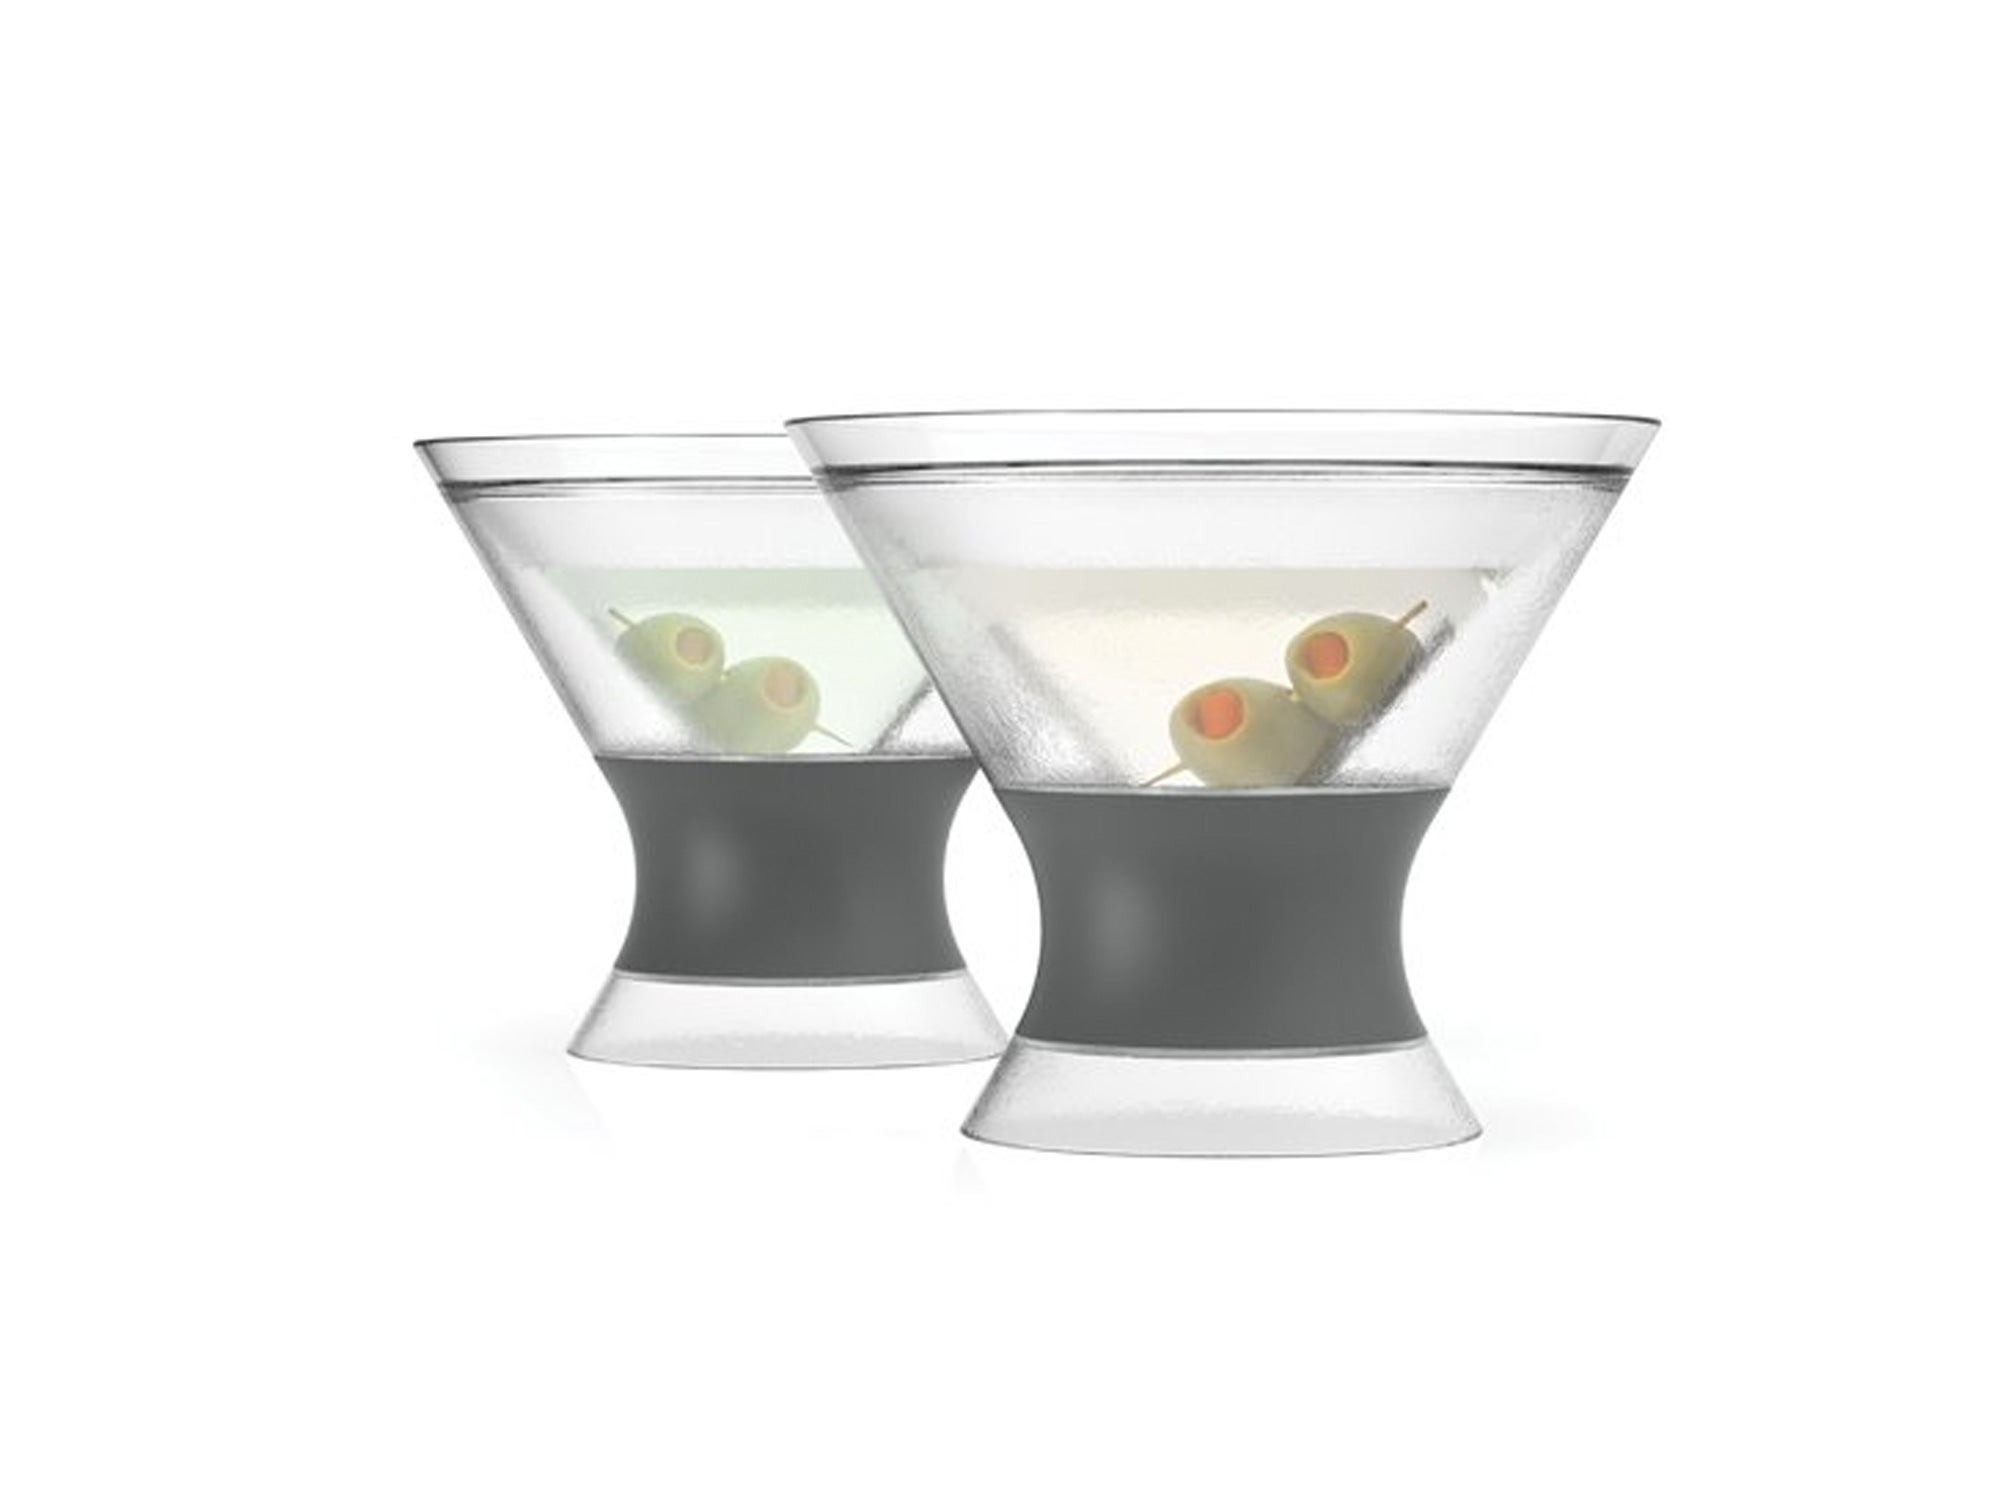 Freeze Stemless Martini, Insulated Plastic Cocktail Tumbler, Set of 2